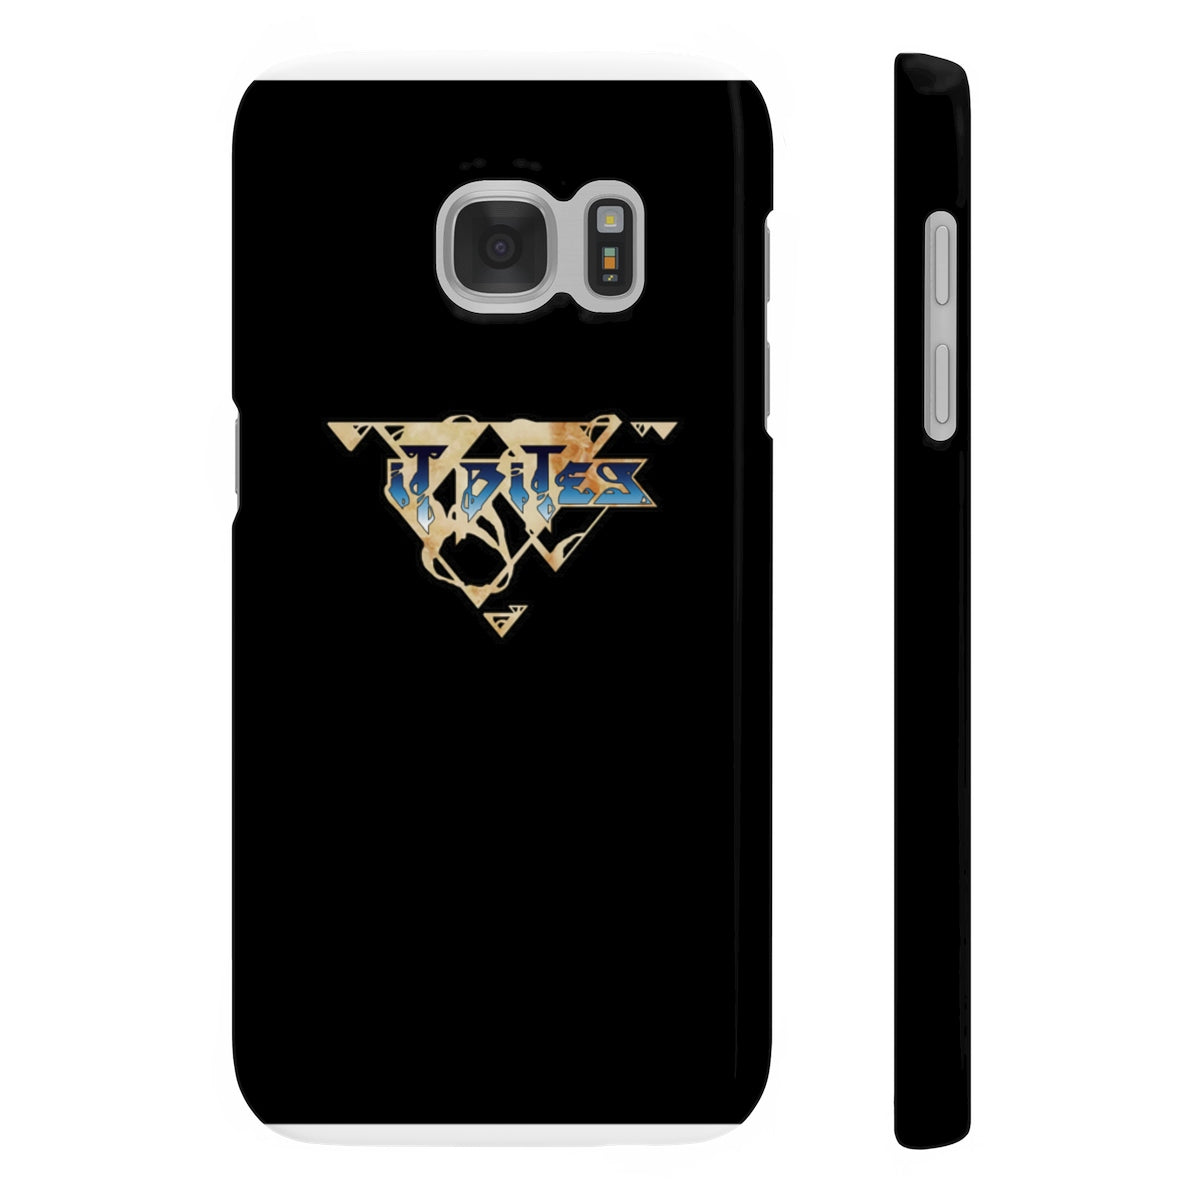 It Bites Phone Cover